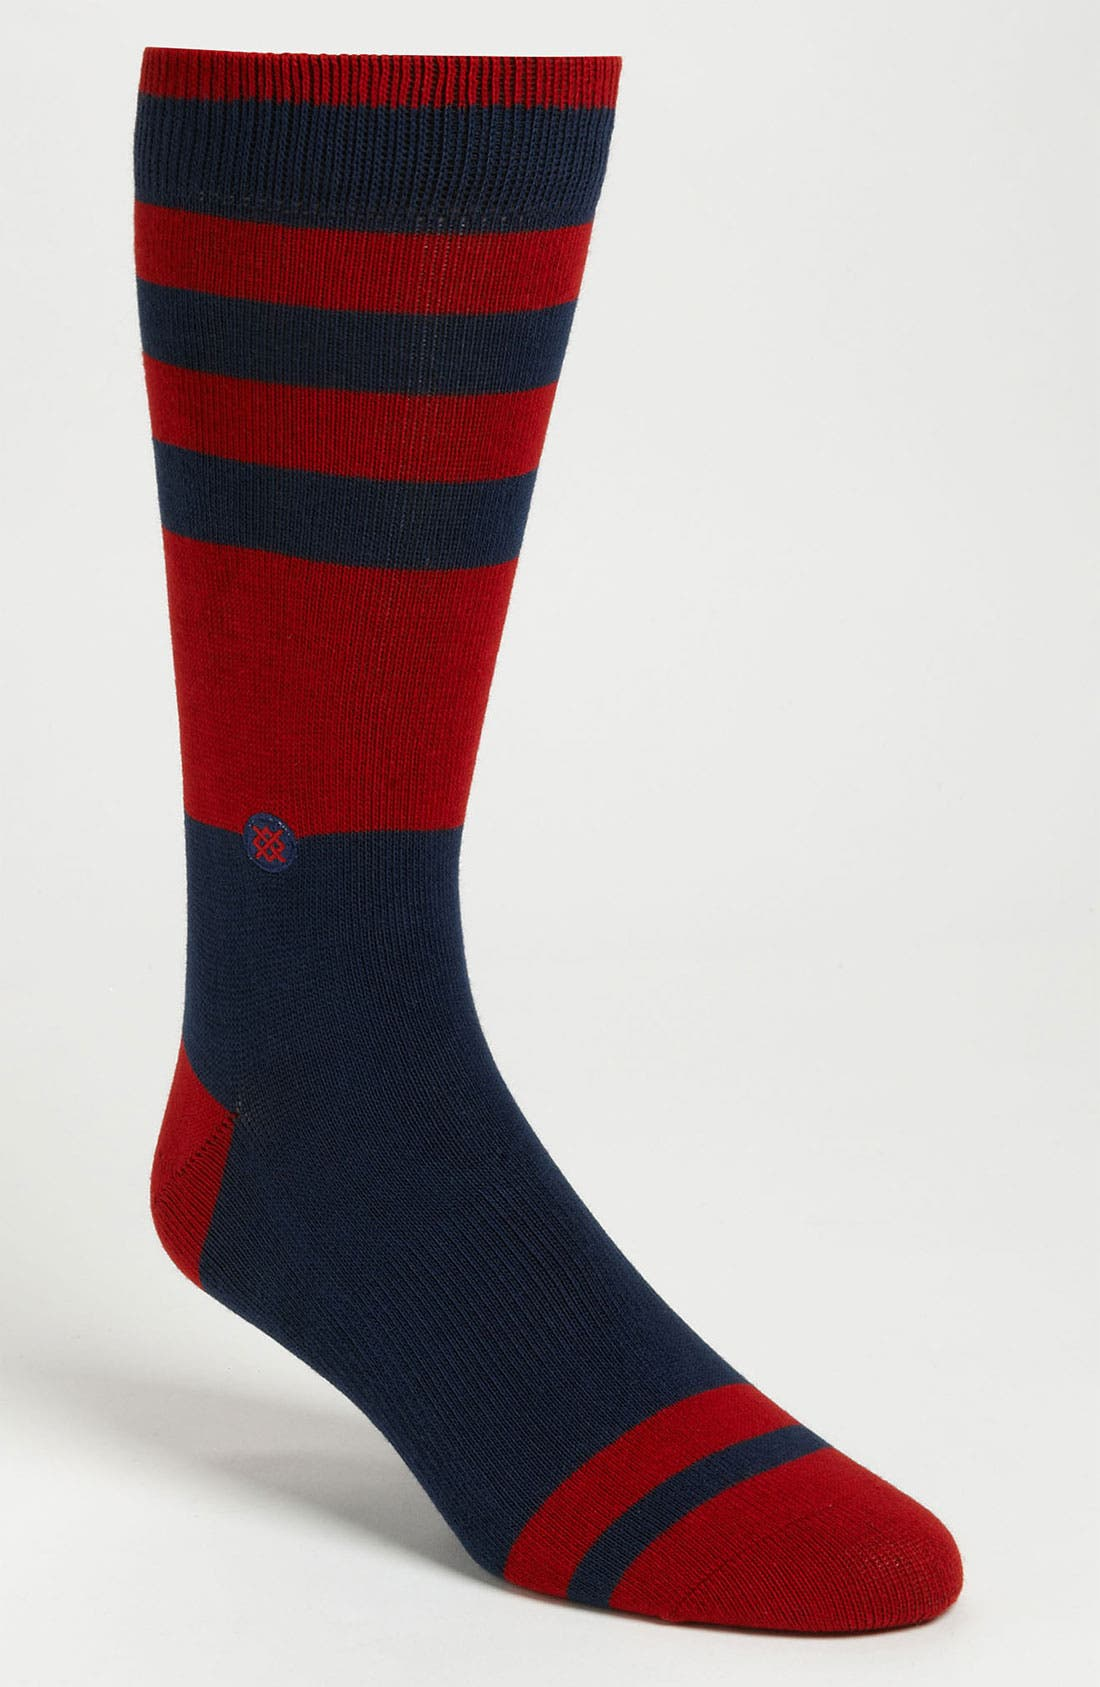 Alternate Image 1 Selected - Stance 'Atlantis' Socks